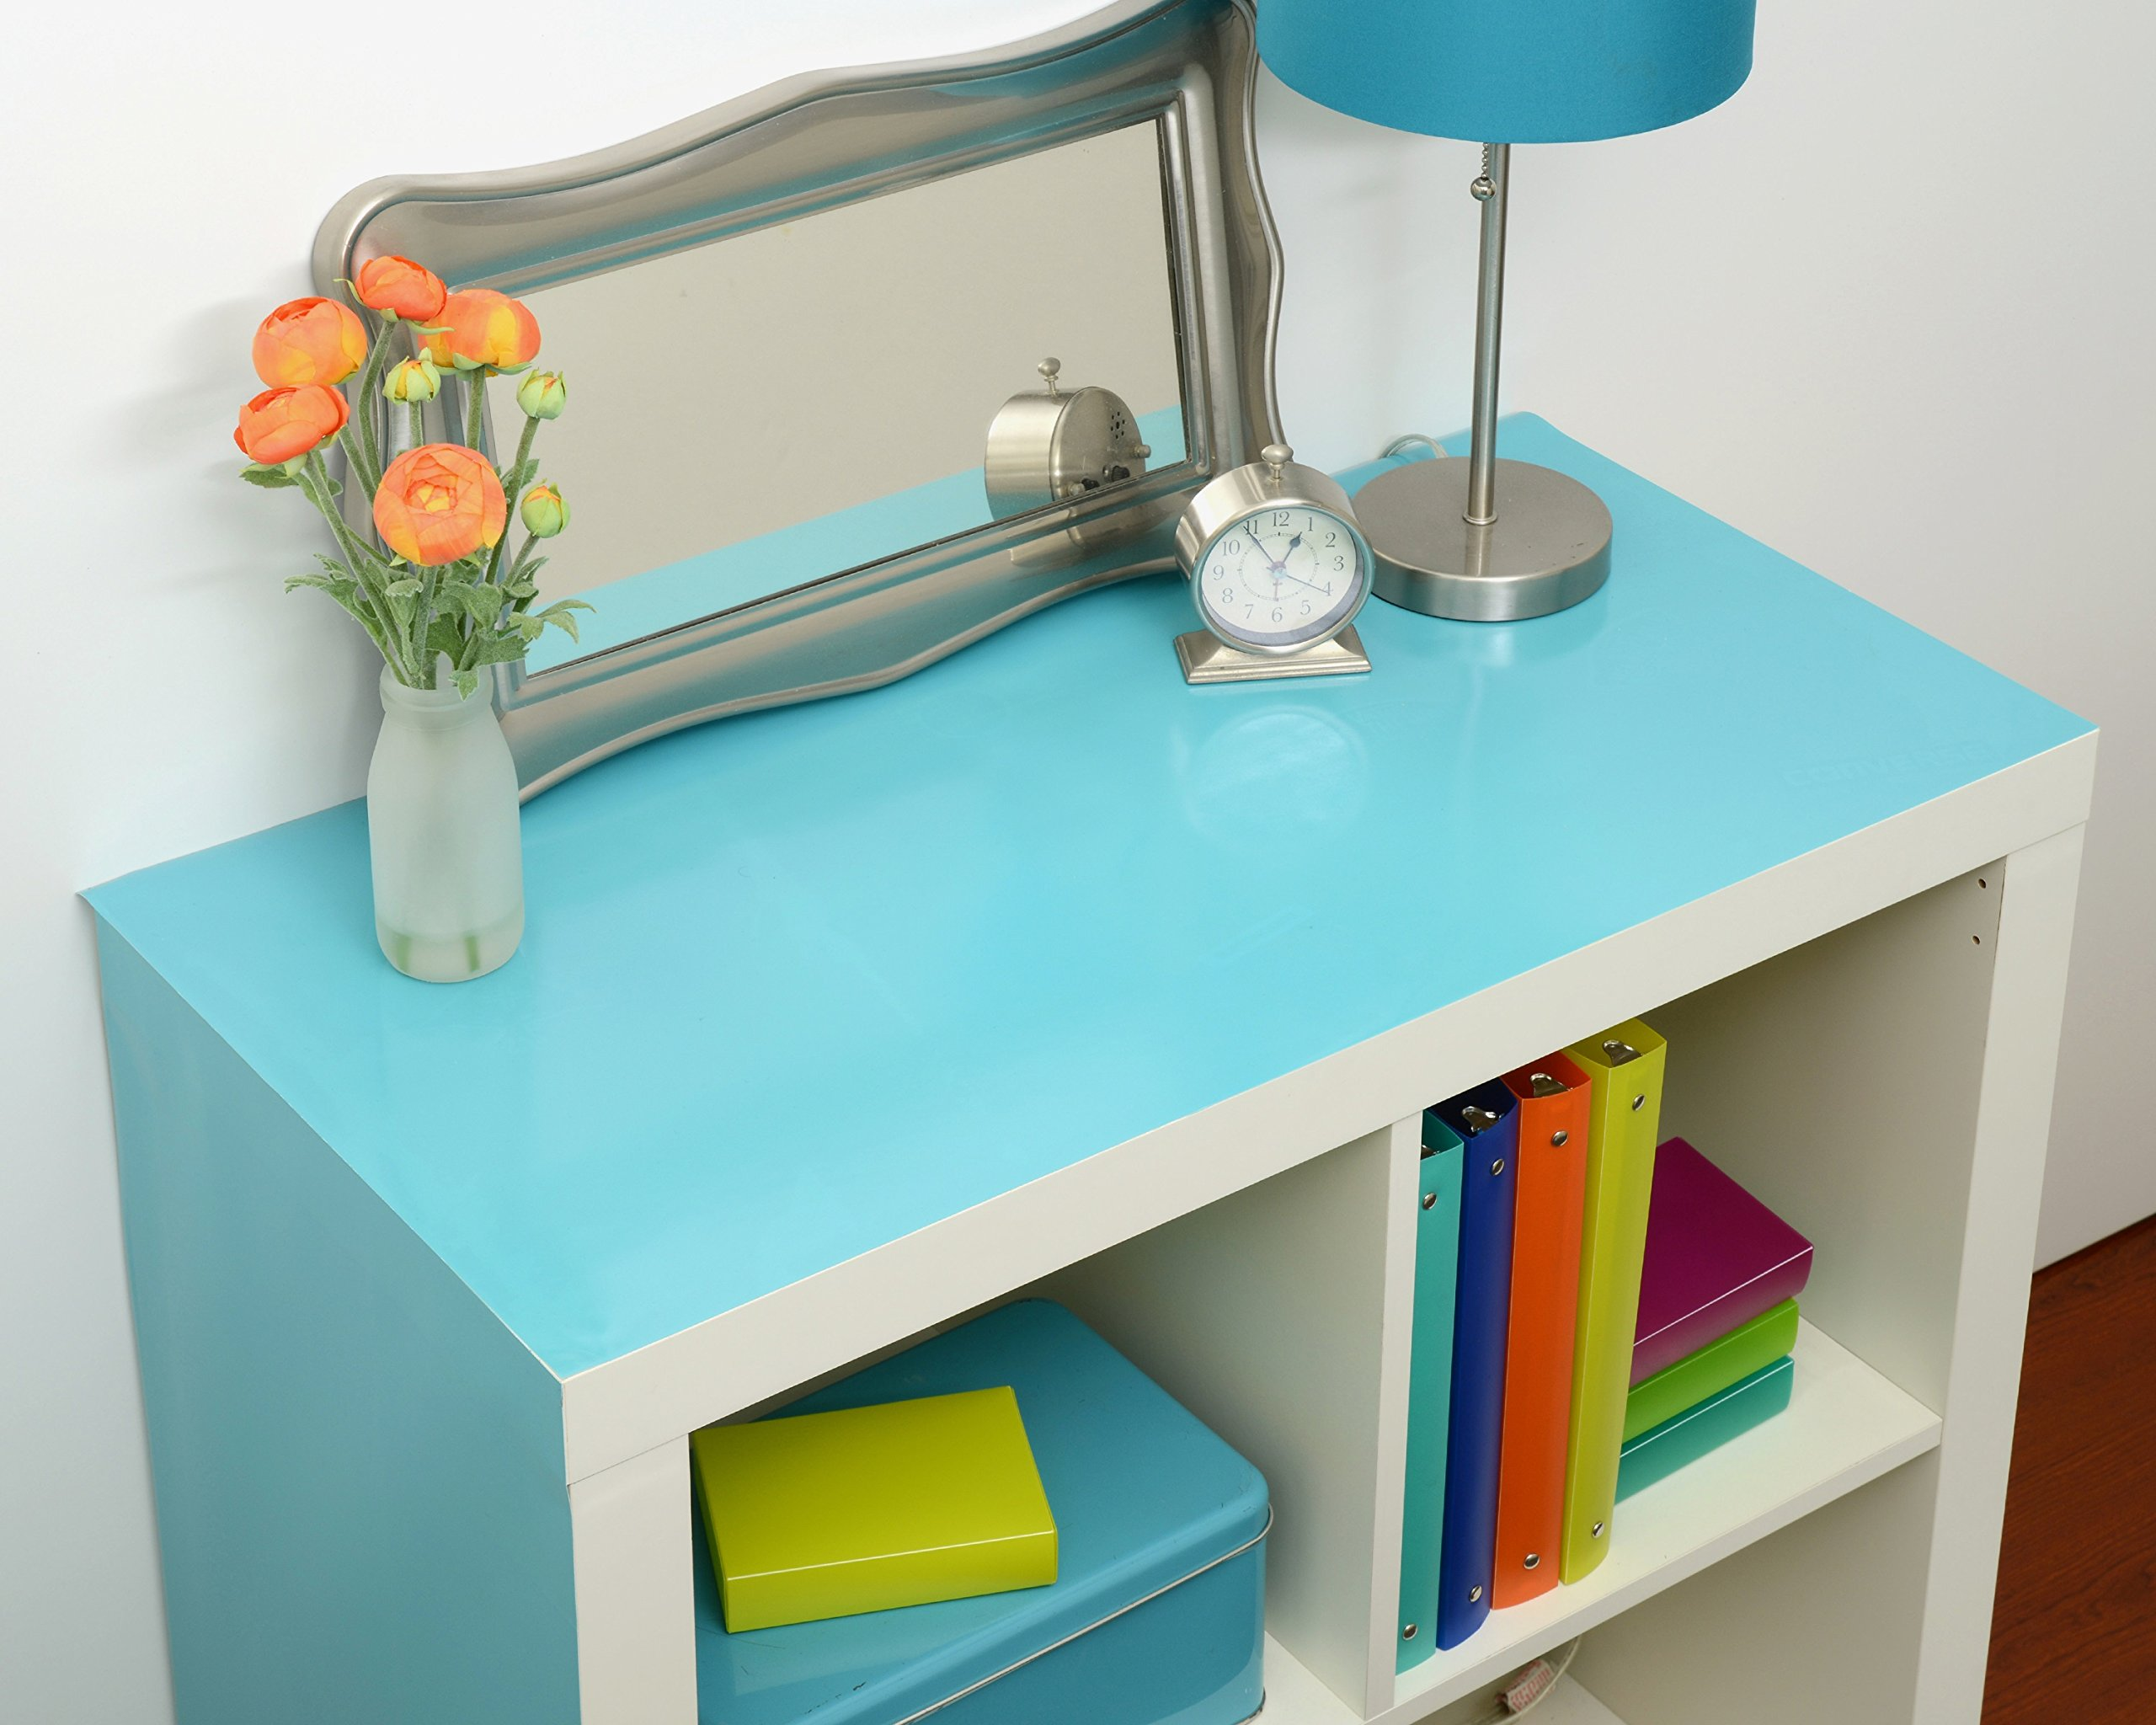 Con-Tact Brand Creative Covering, 20F-C9A3W2-06, Adhesive Vinyl Shelf Liner and Drawer Liner, Teal, 18'' x 20'